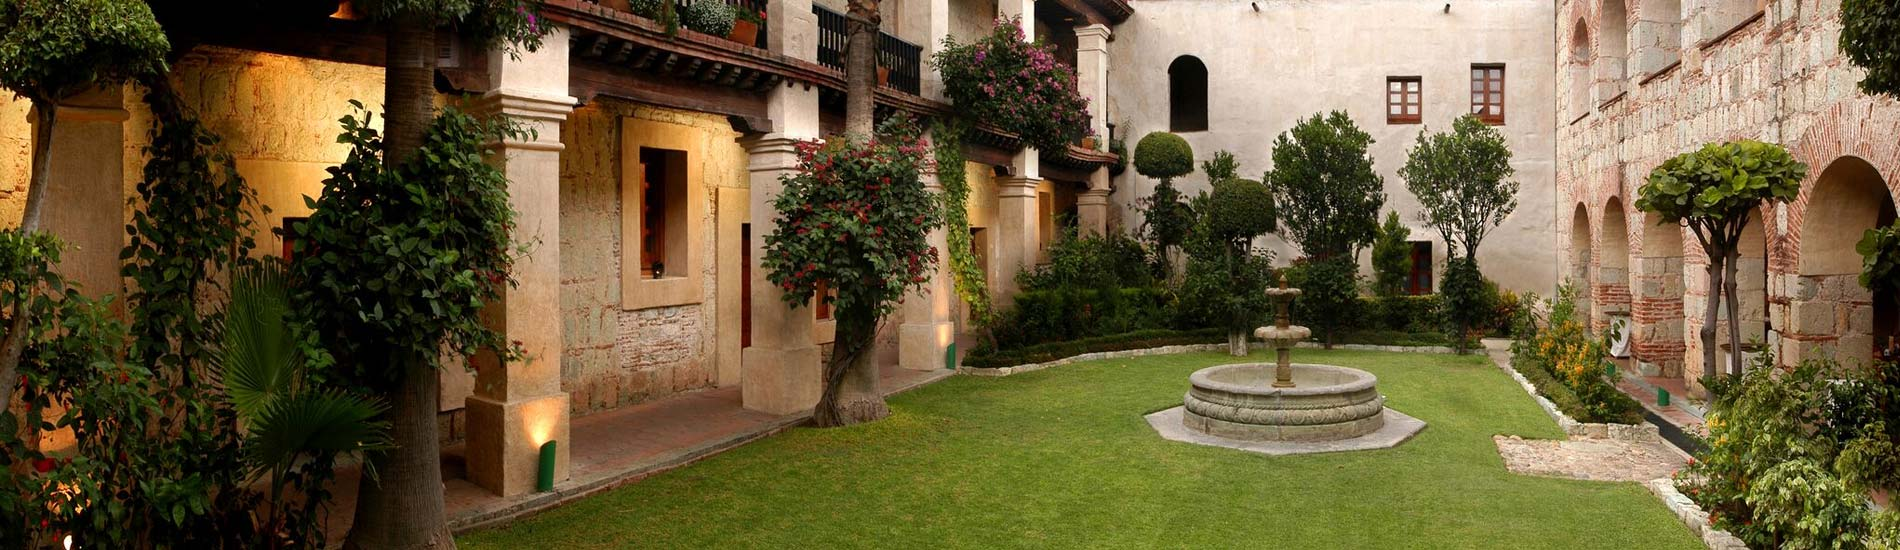 Hotels in Oaxaca | Fodor's Travel